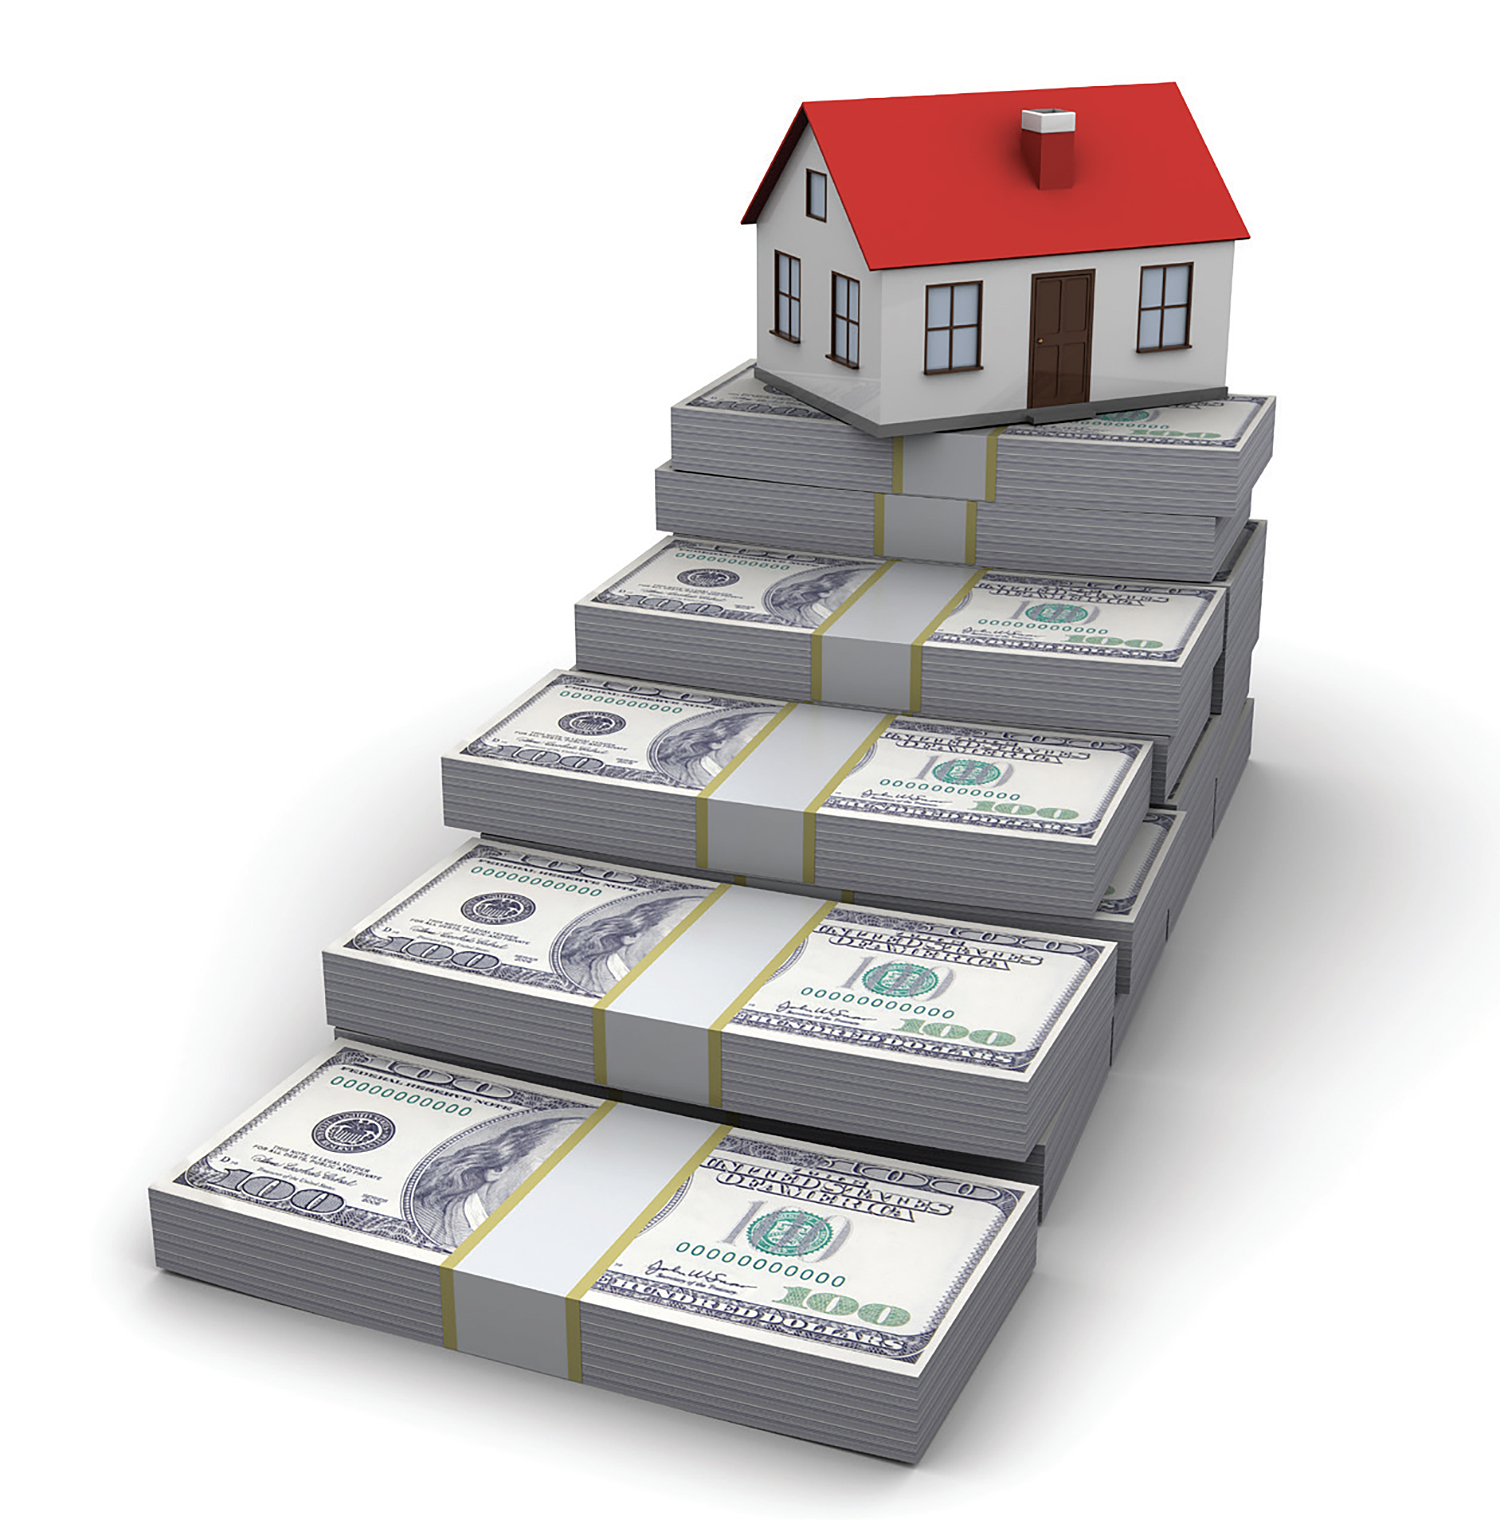 Make More Sales and More Money in 2015. TOP TEN NEW HOME SALES TIPS